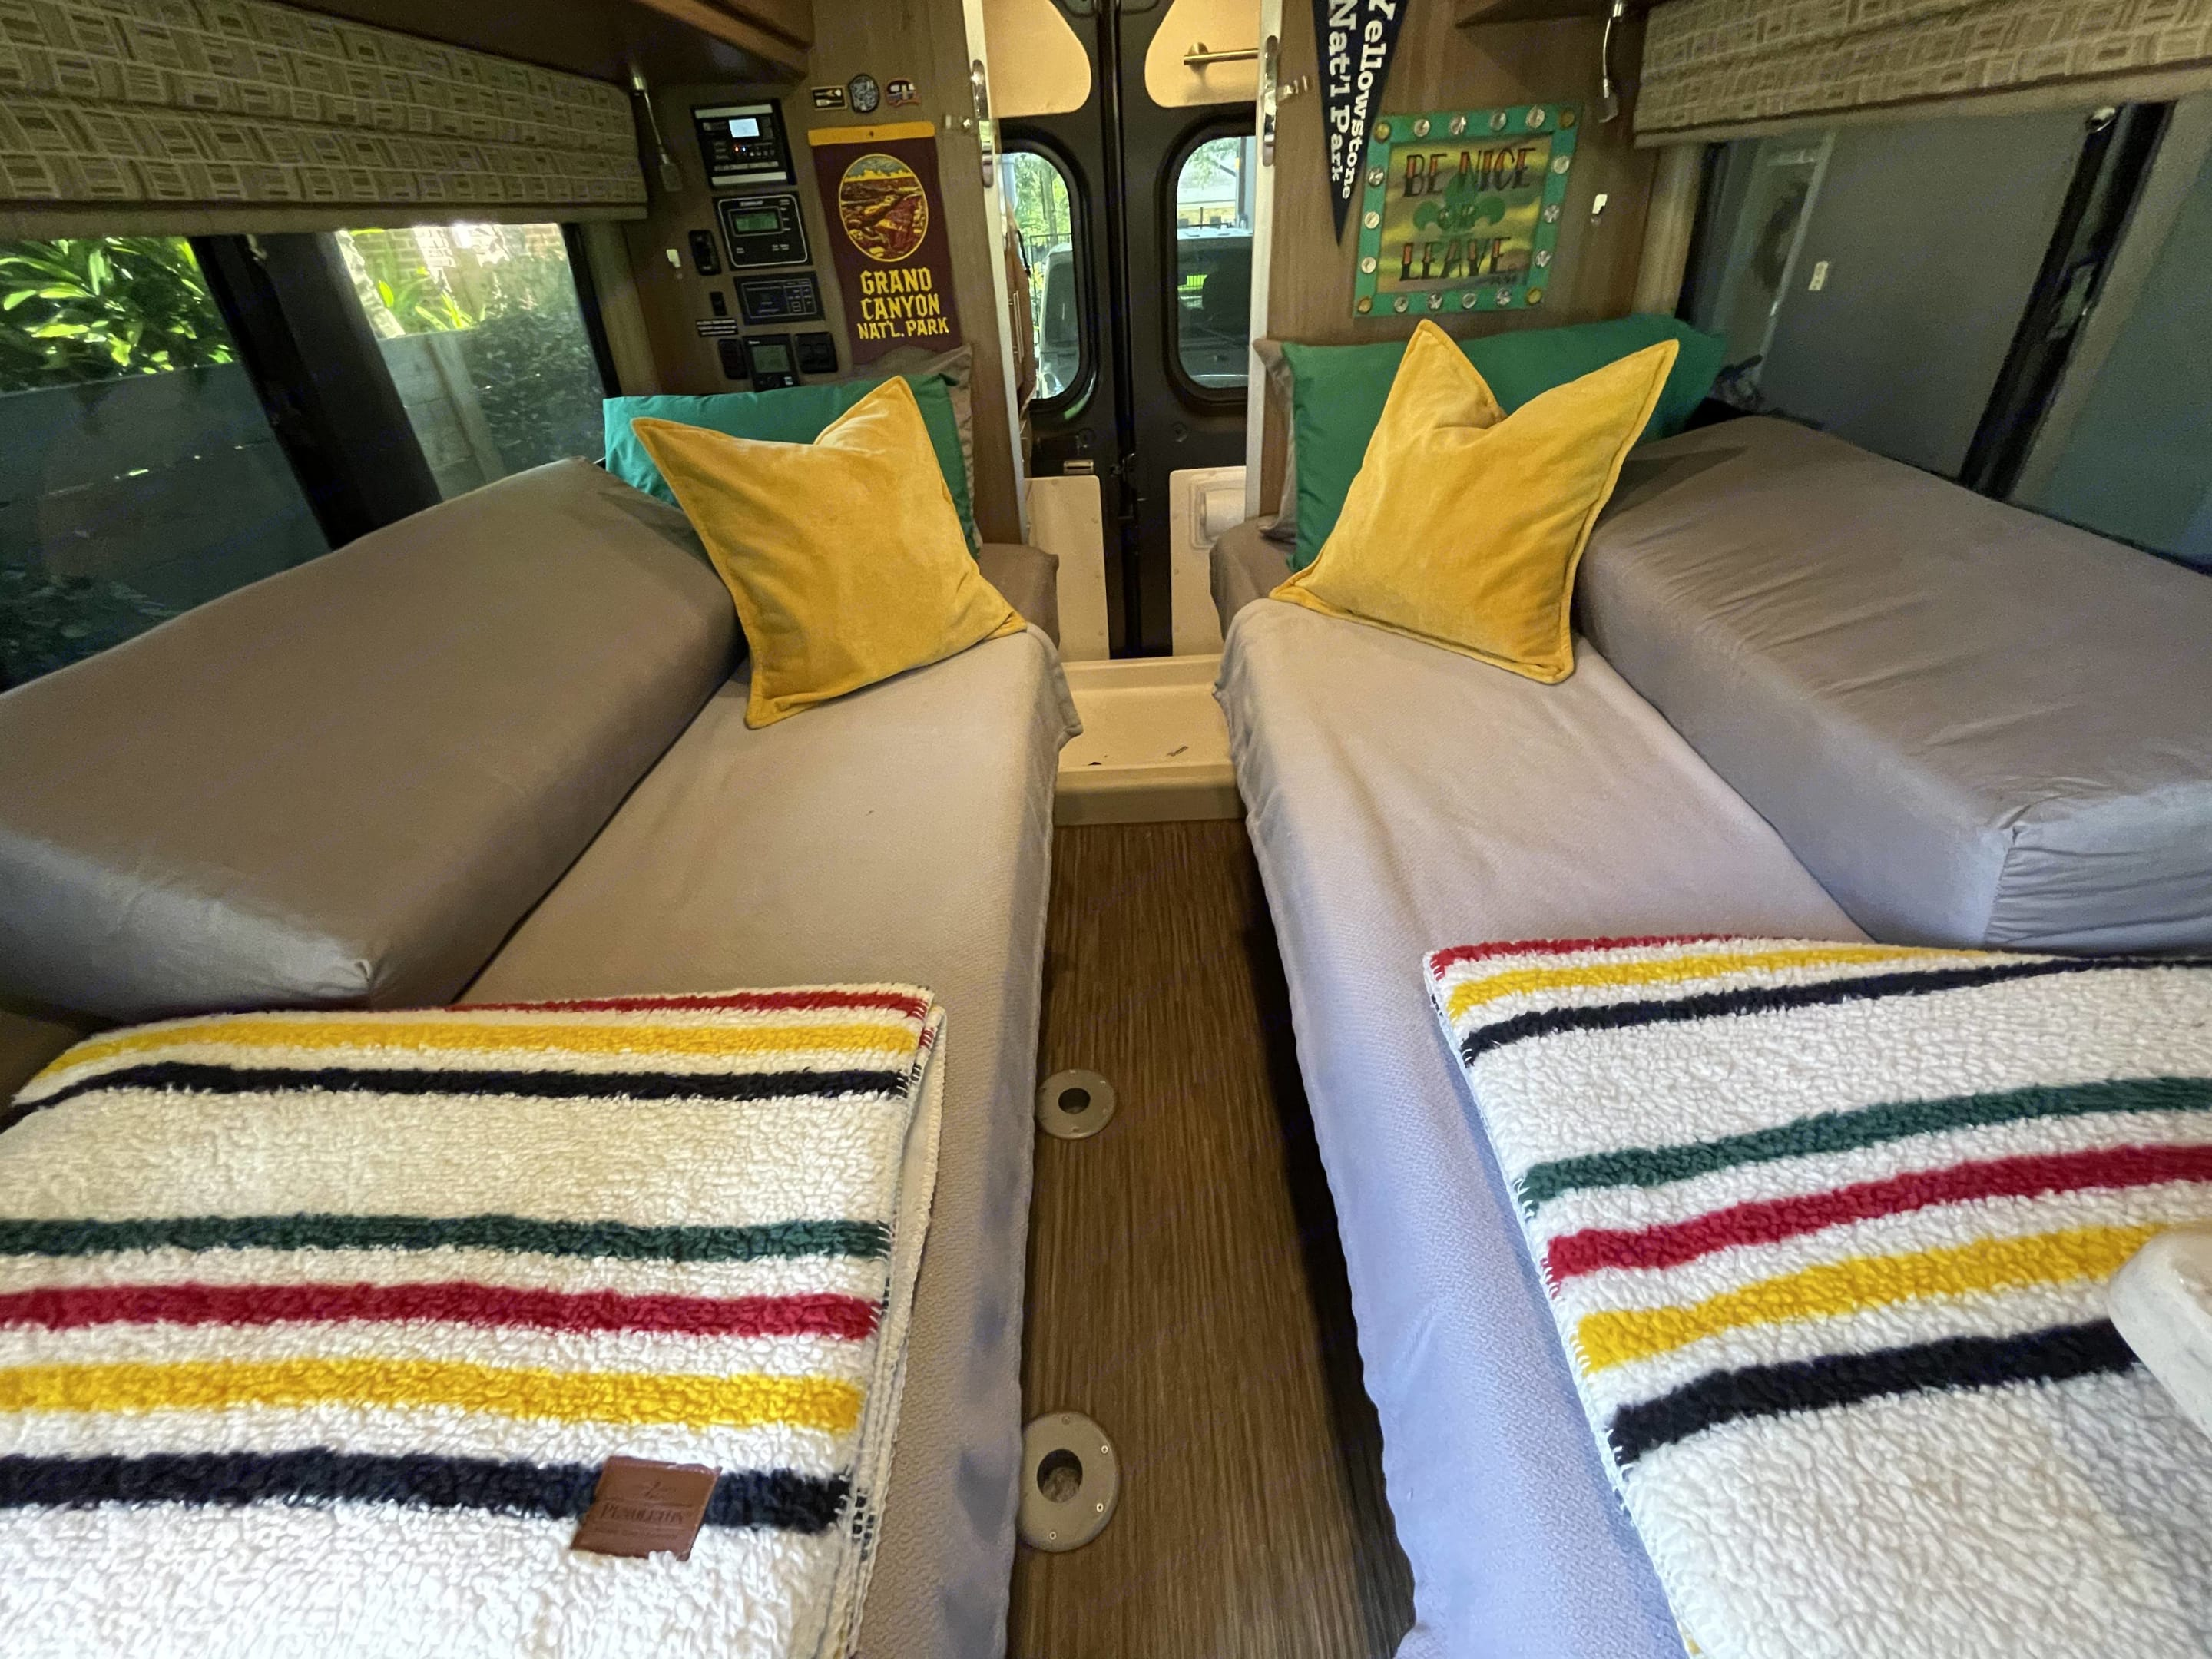 Move bolsters to center for a king size bed!. Winnebago Travato 2017